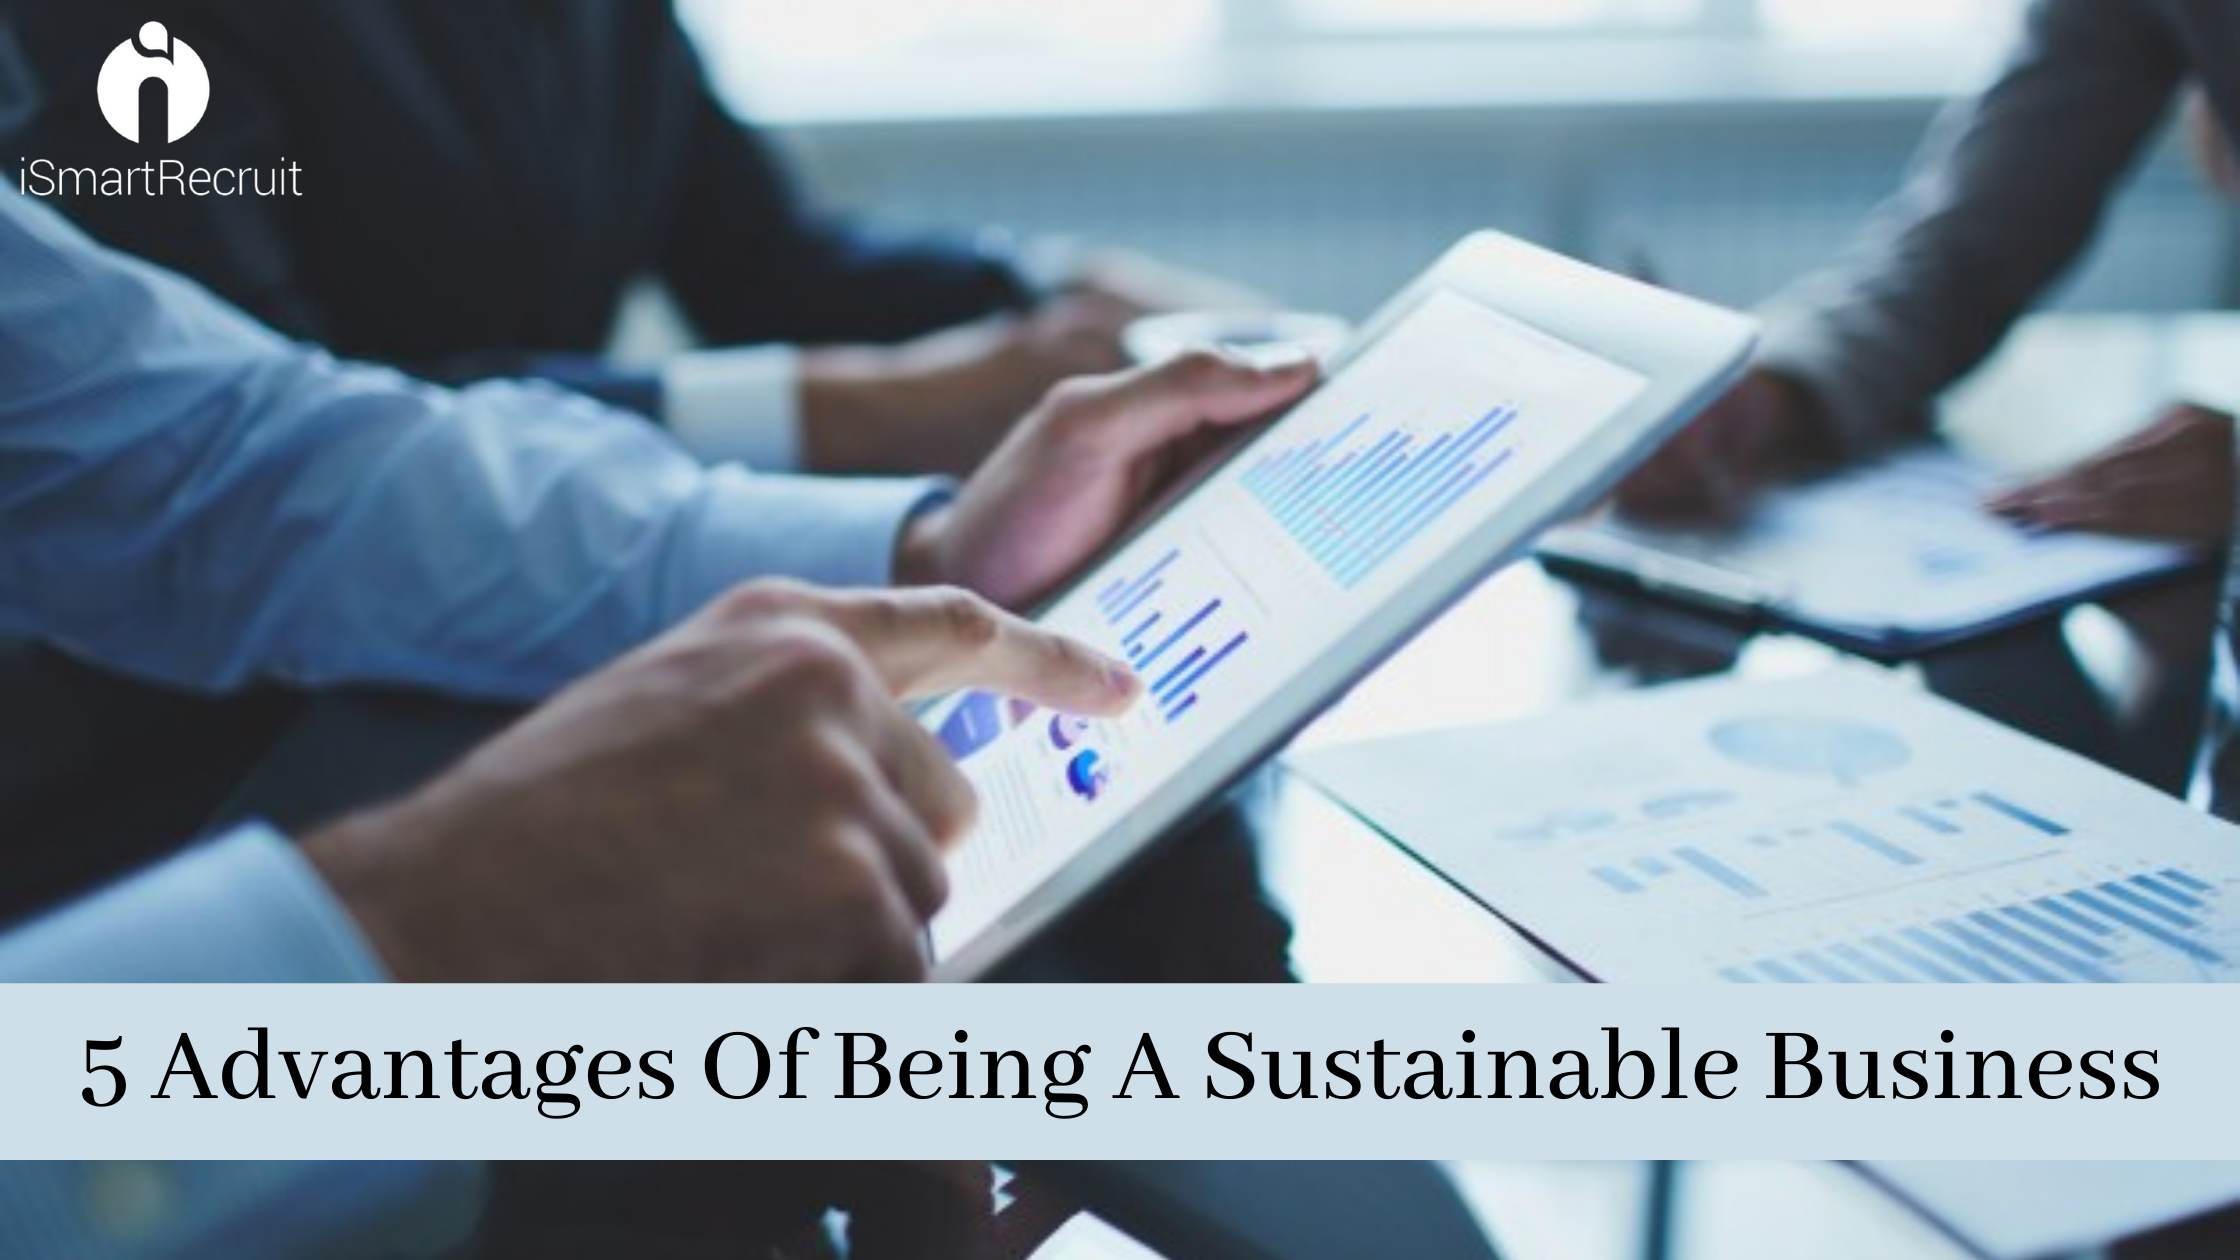 5 Advantages Of Being A Sustainable Business